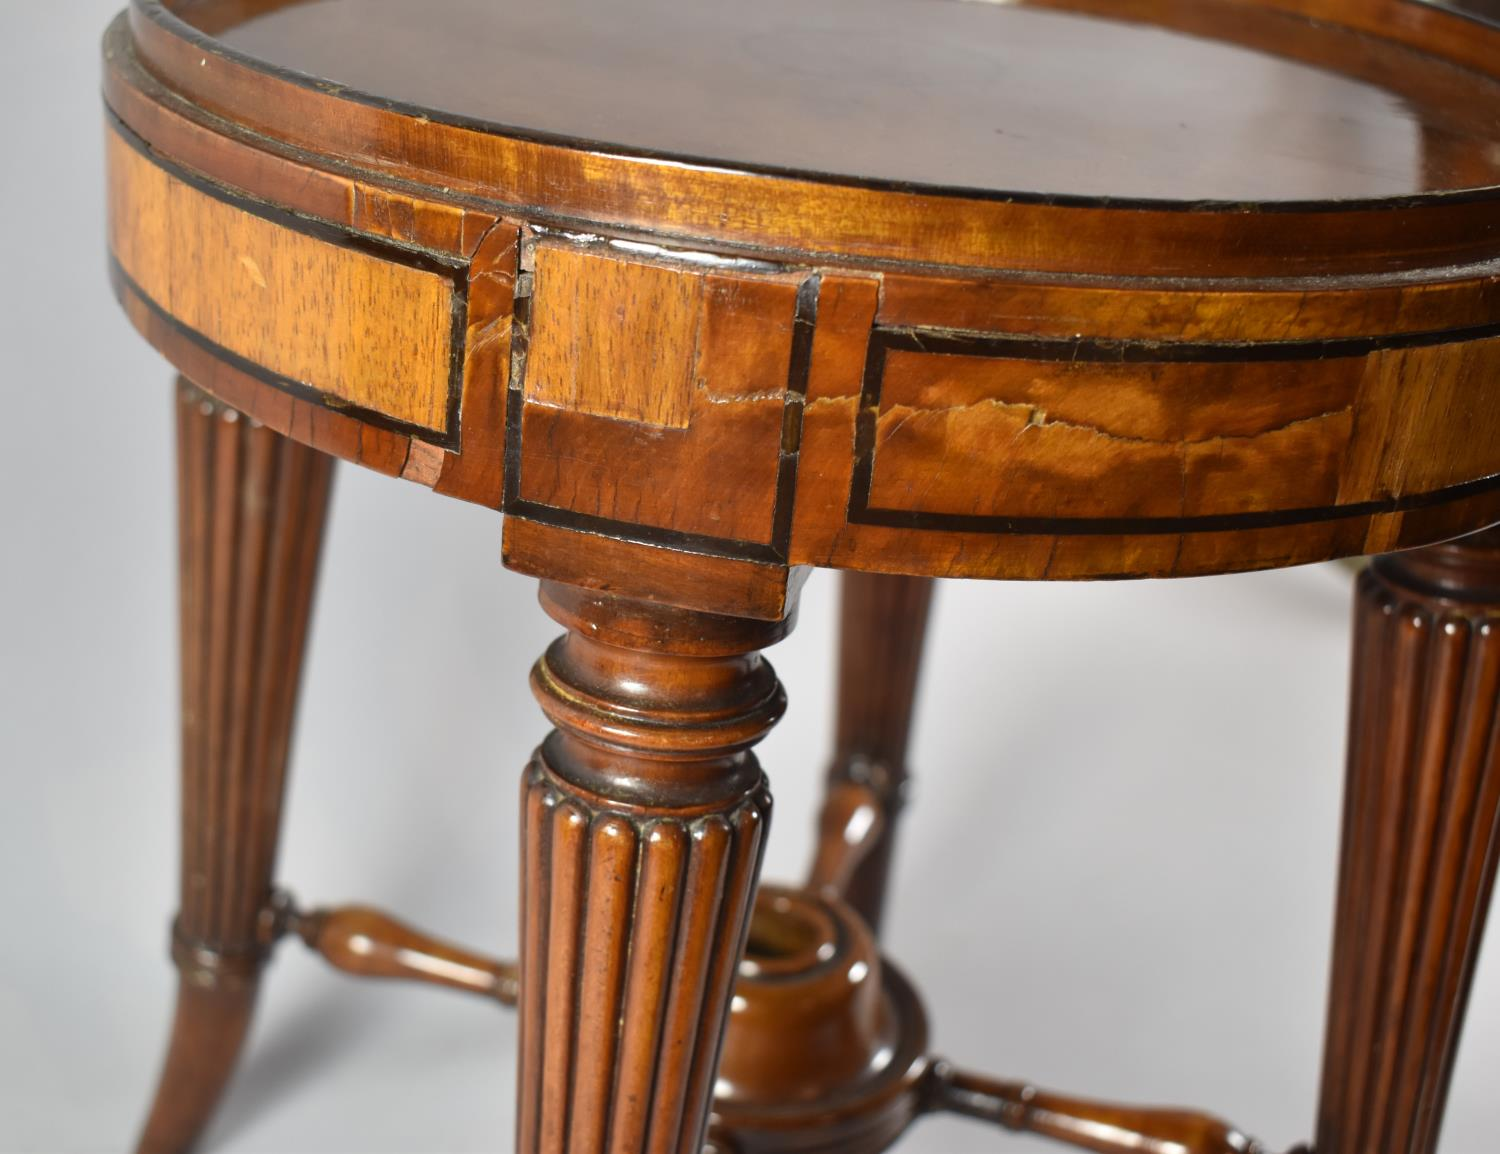 A Former Swivel Top Piano Stool Base Converted to Table with Turned Reeded Tapering Legs, 34cm - Image 2 of 4